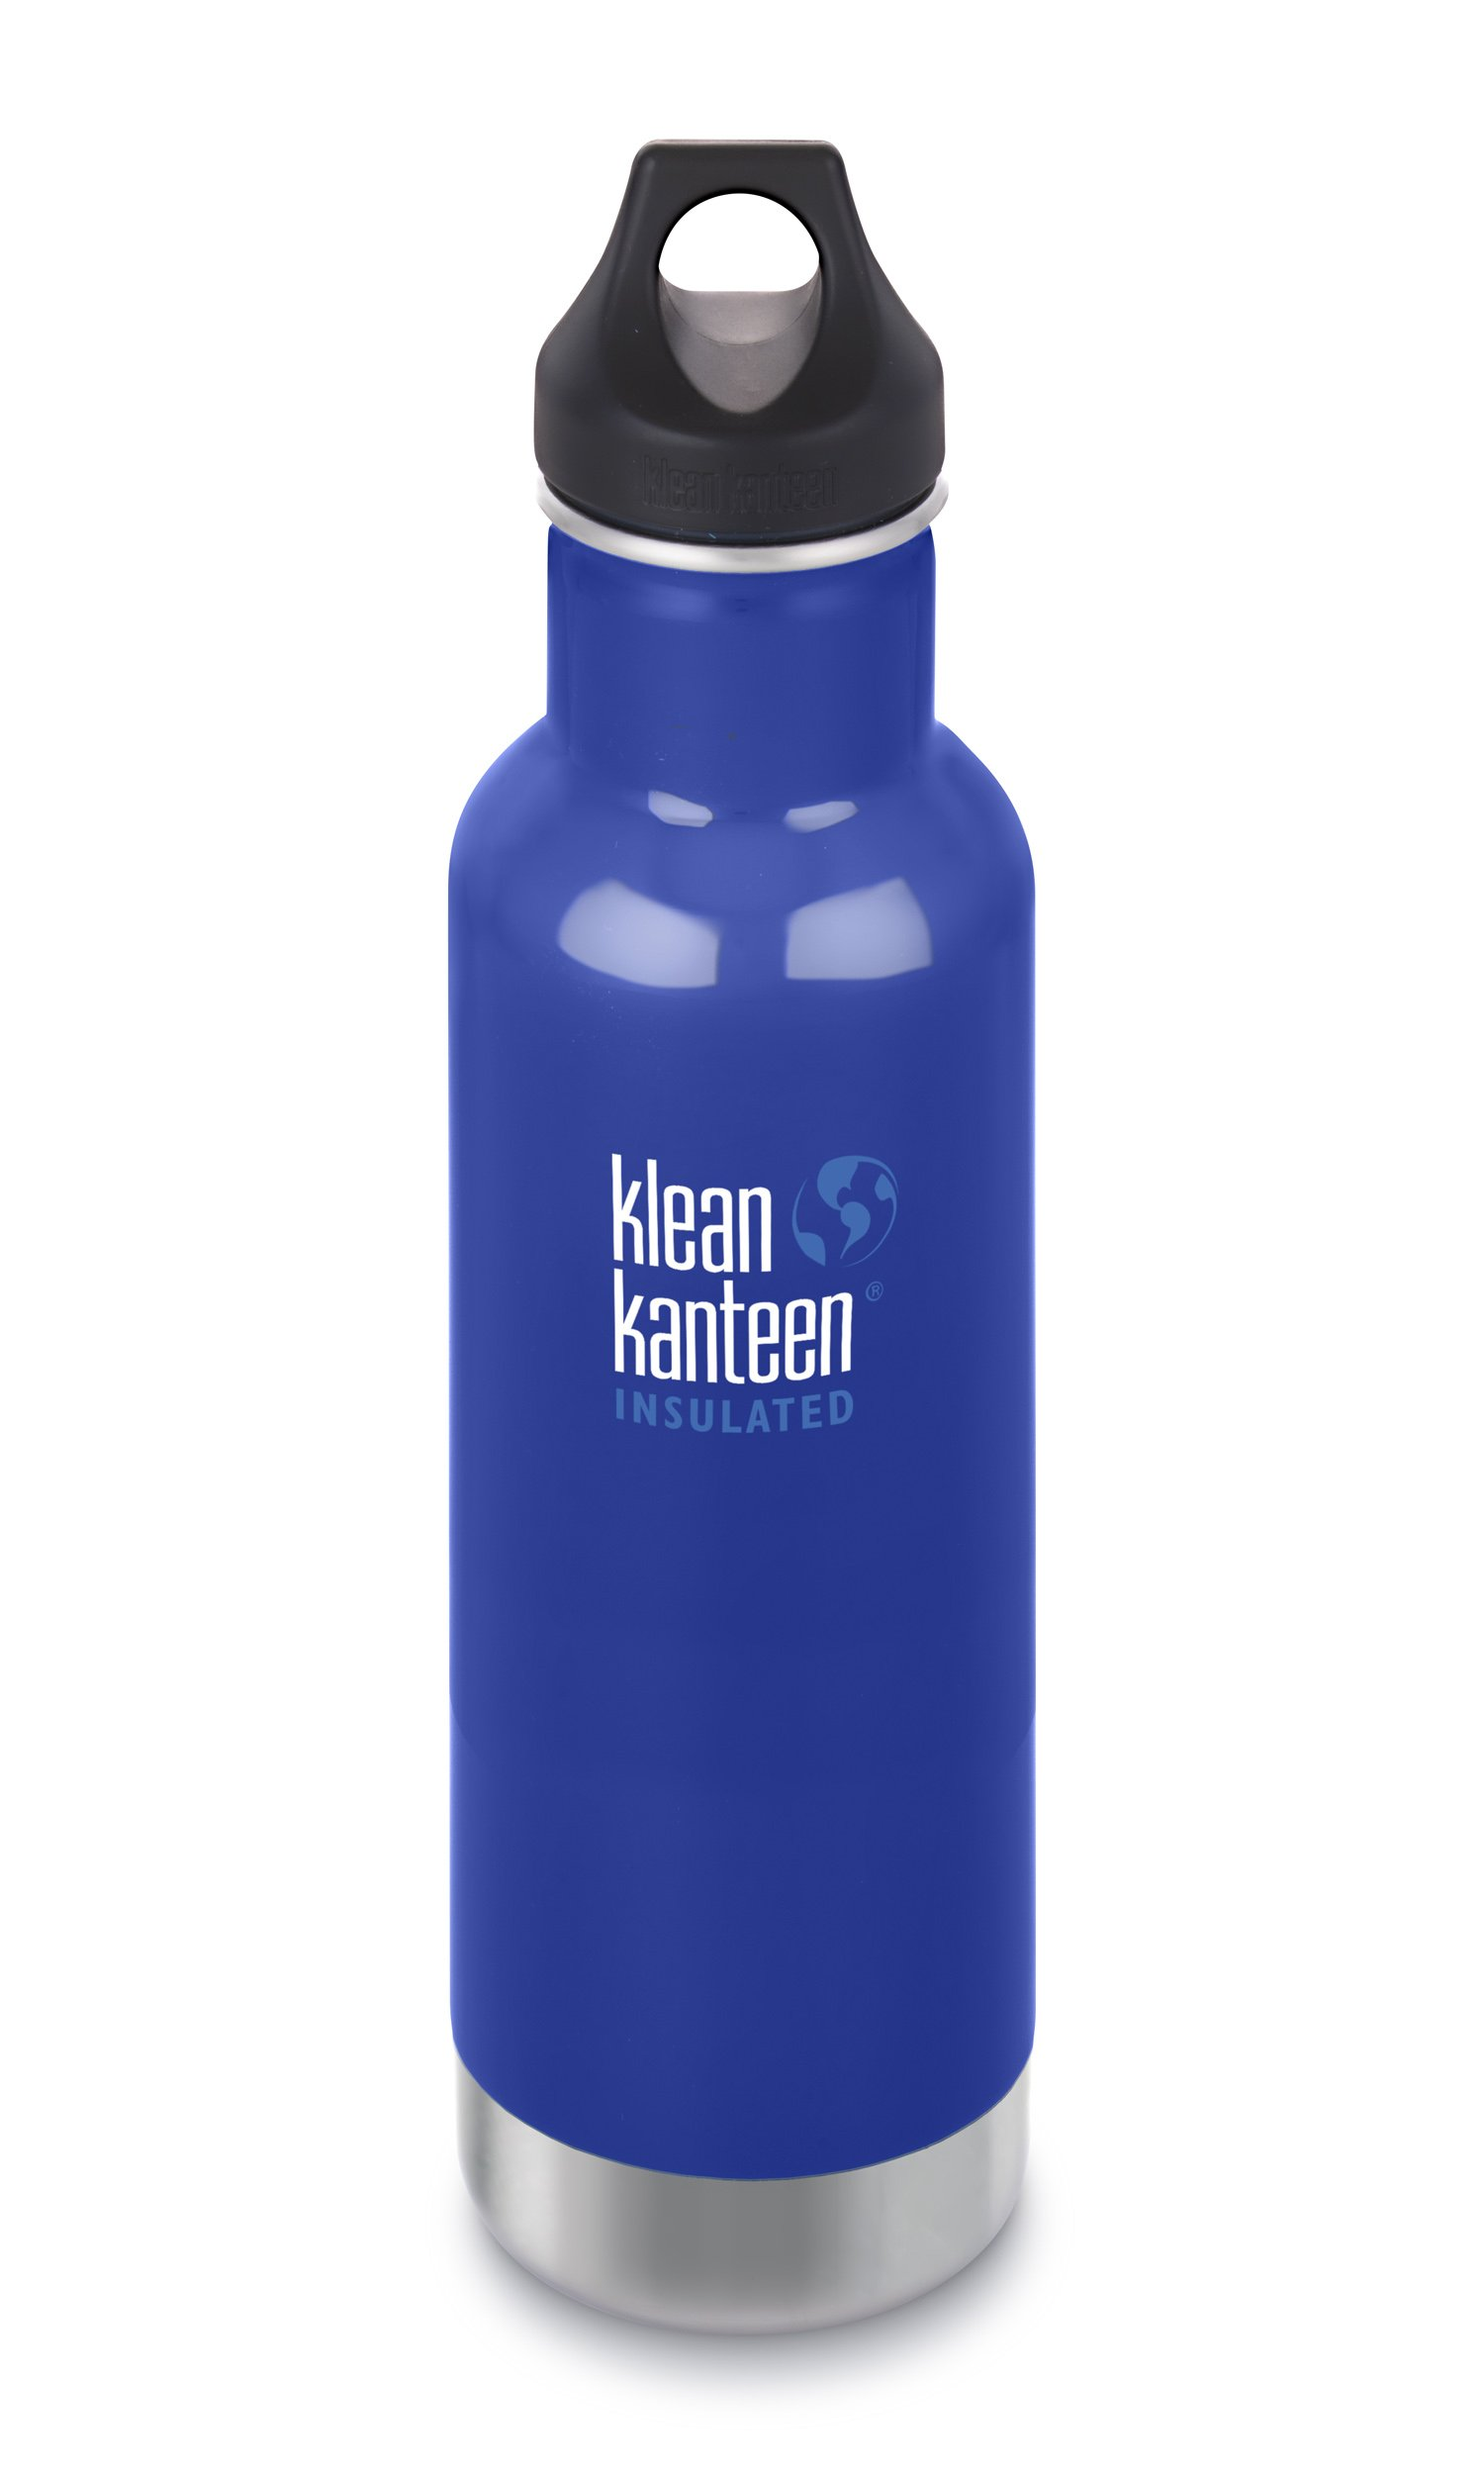 Klean Kanteen Classic Insulated Stainless Steel Water Bottle with Klean Coat and Leak Proof Loop Cap - 20oz - Coastal Waters